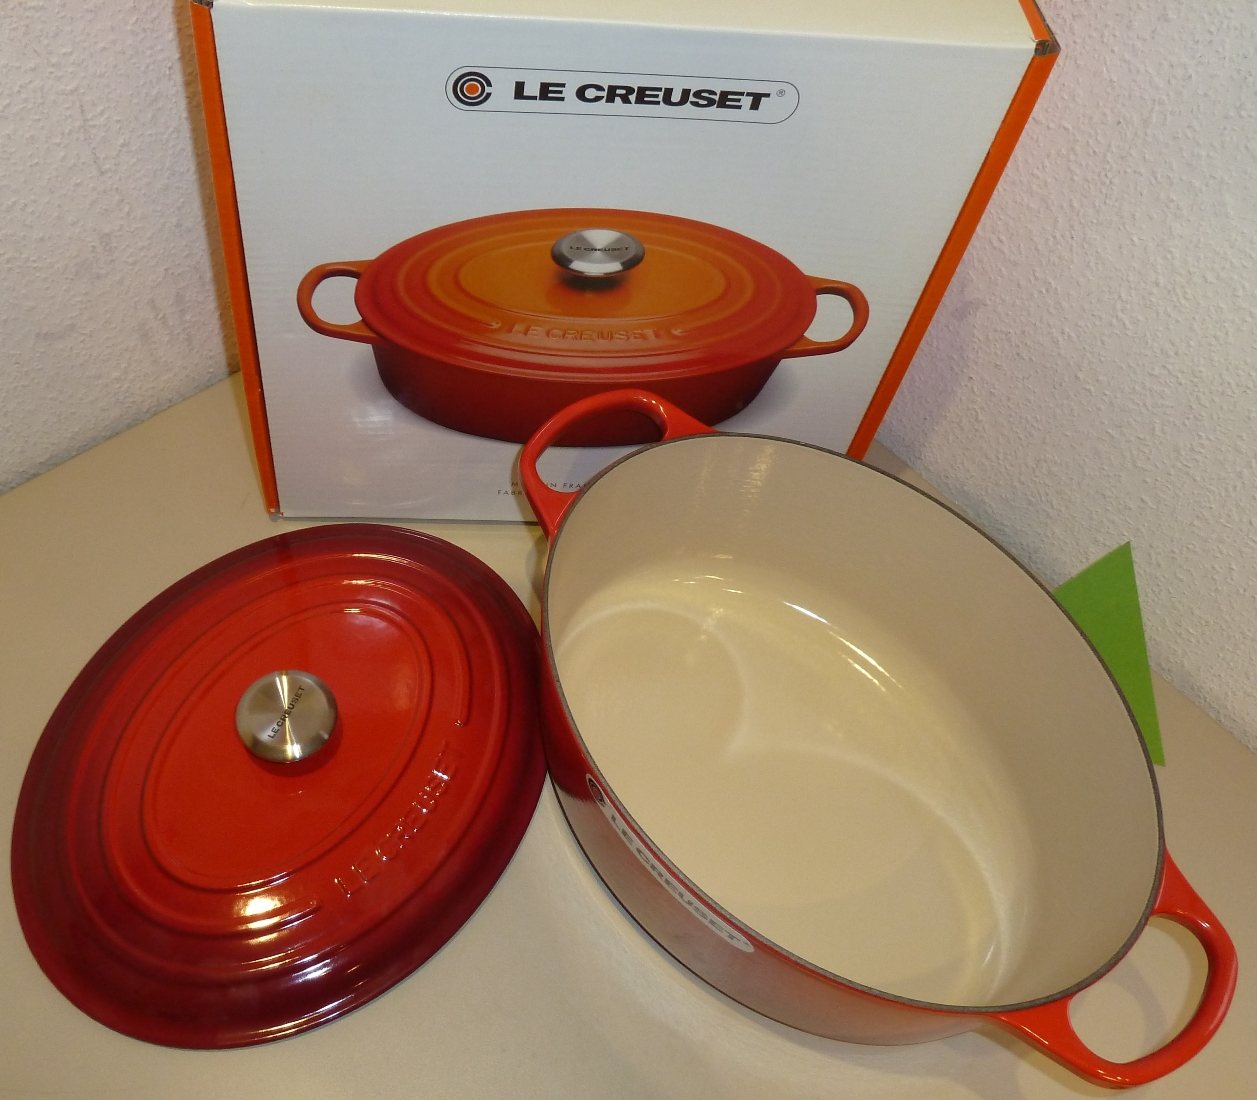 homann schenken kochen wohnen le creuset br ter signature 35 cm oval kirschrot induktion. Black Bedroom Furniture Sets. Home Design Ideas